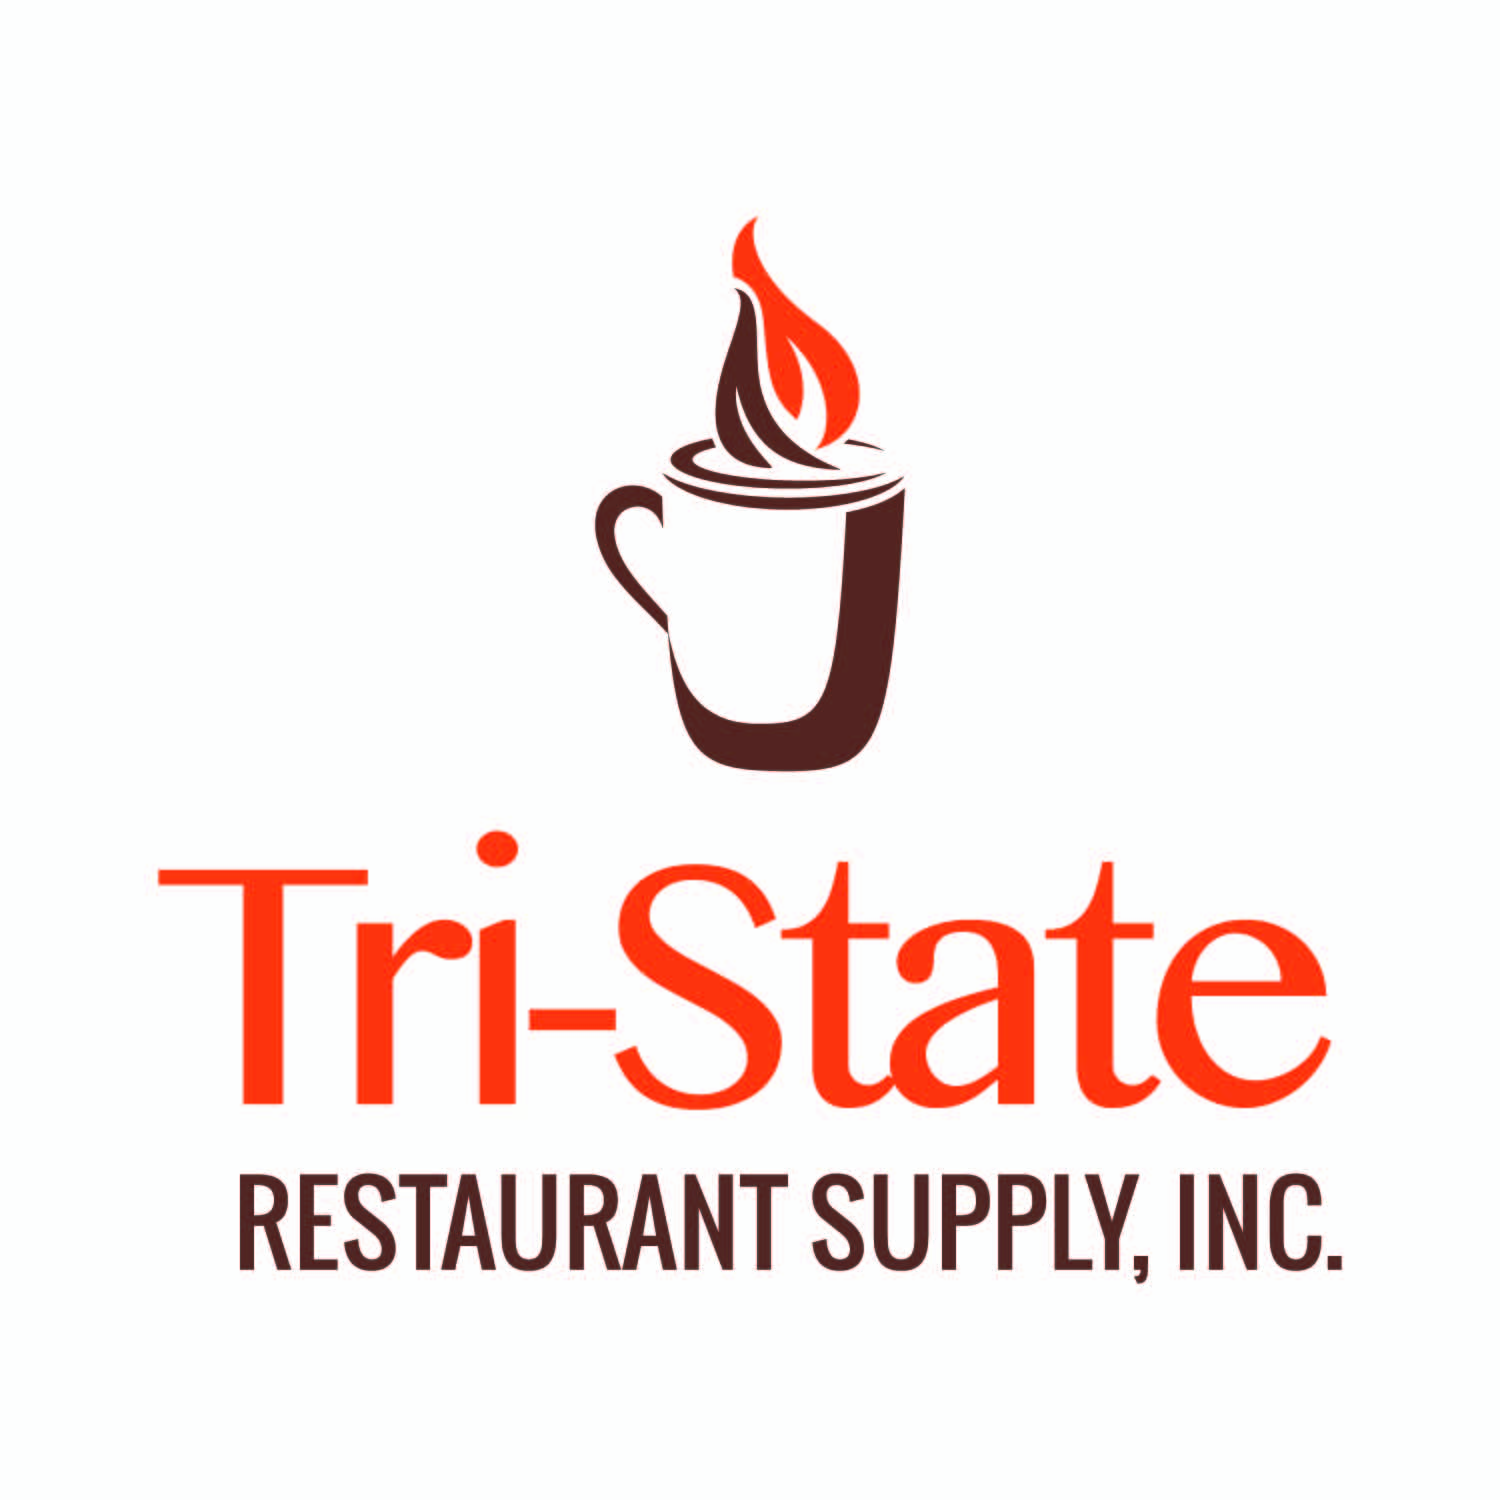 Tri-State Restaurant Supply Inc